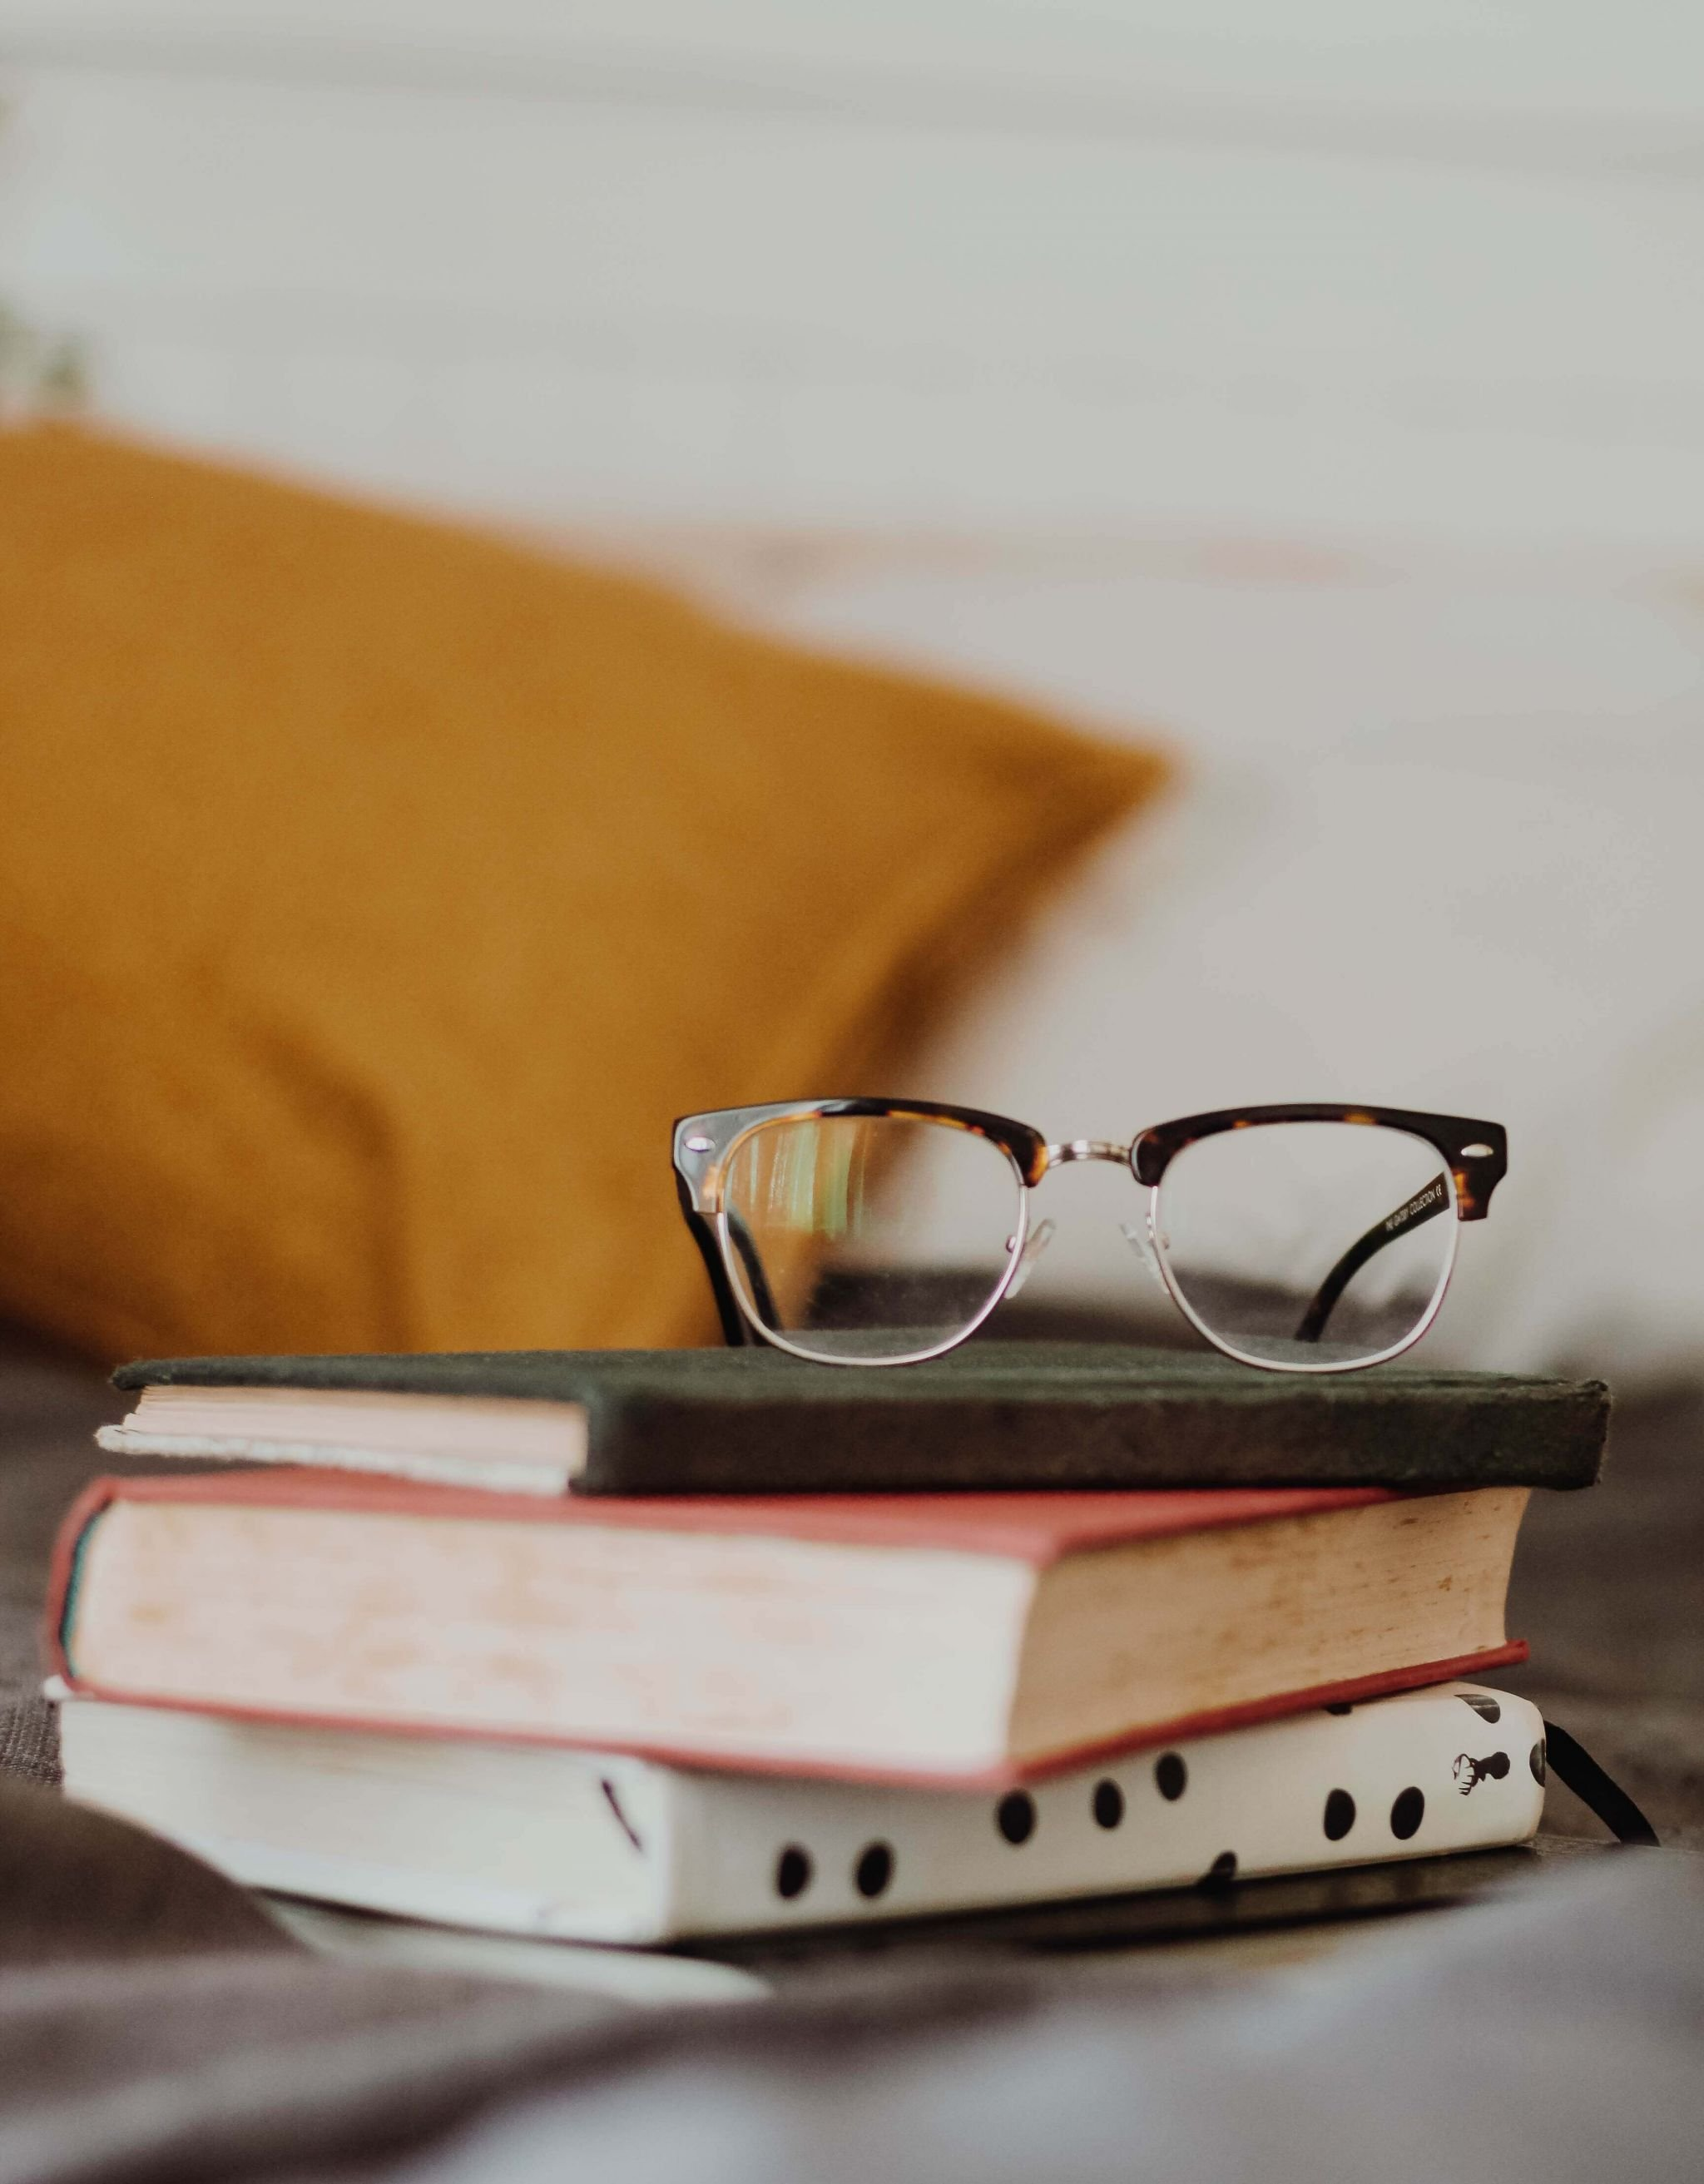 free and bargain books - yellow cushion, stack of books and a woman's glasses